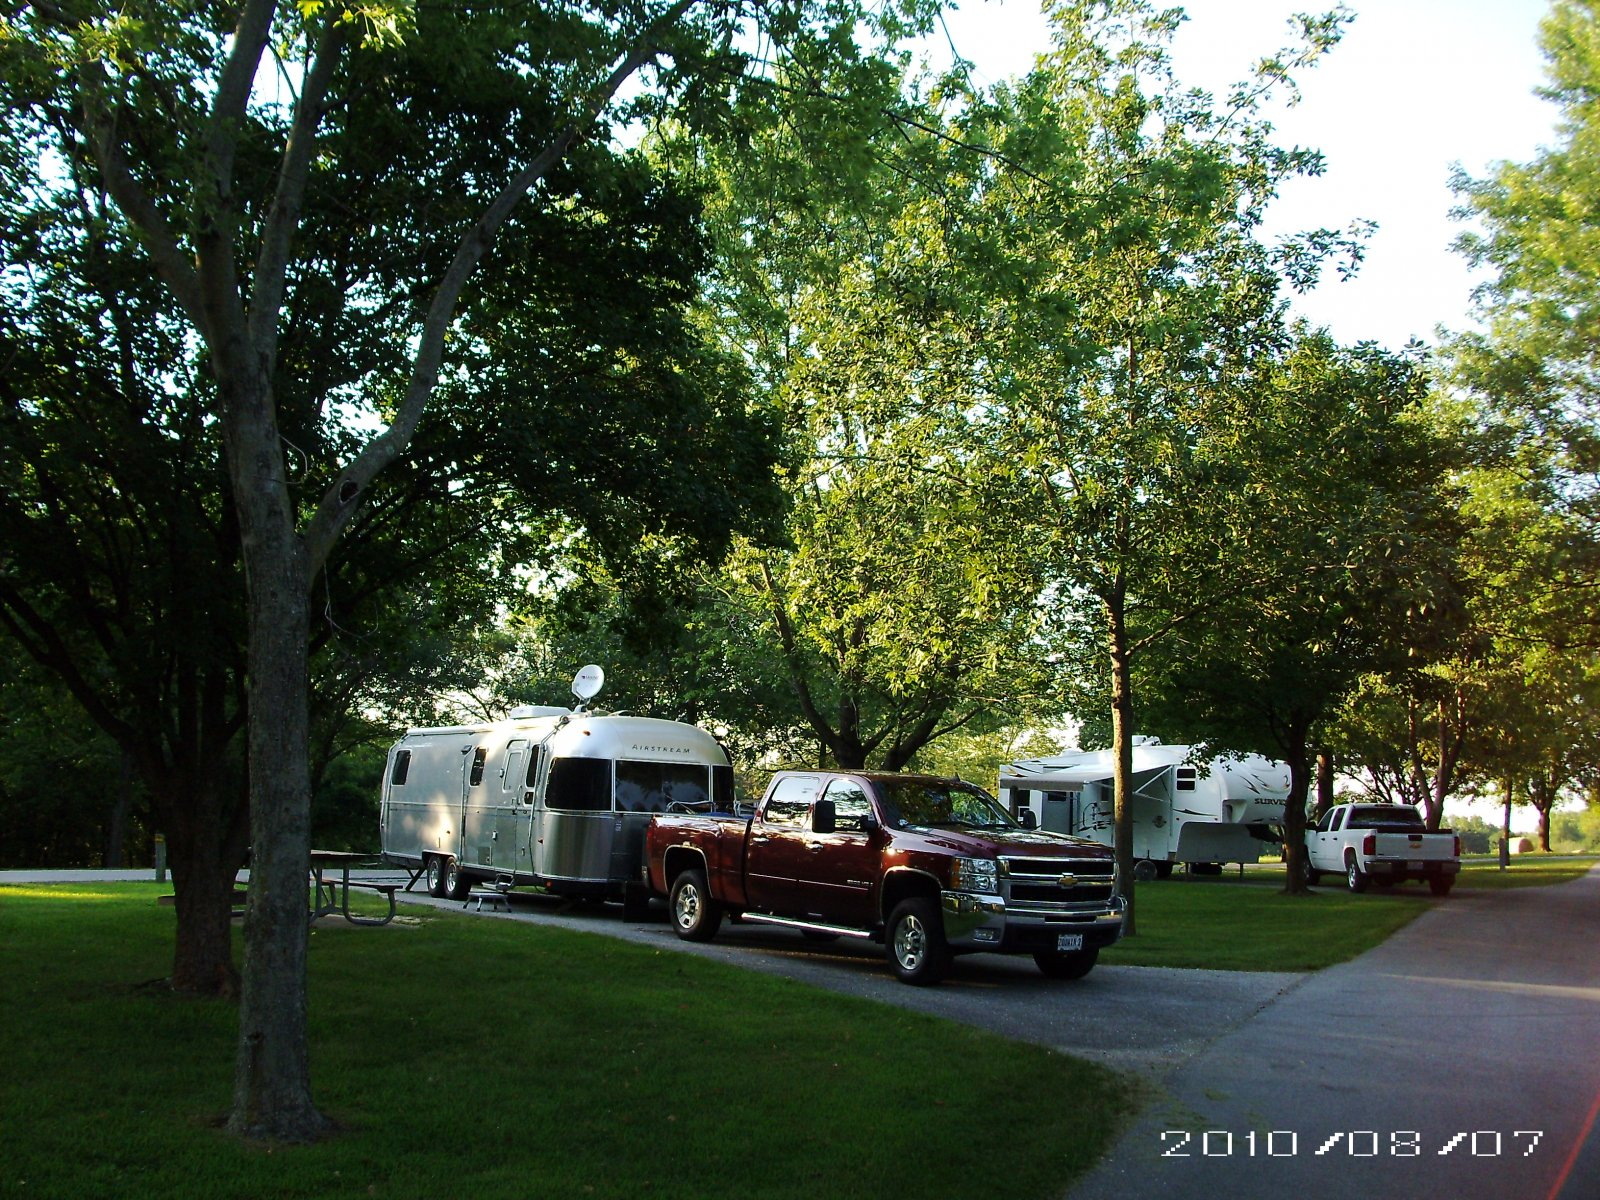 Click image for larger version  Name:Arrow Rock Campground.jpg Views:65 Size:622.9 KB ID:108304